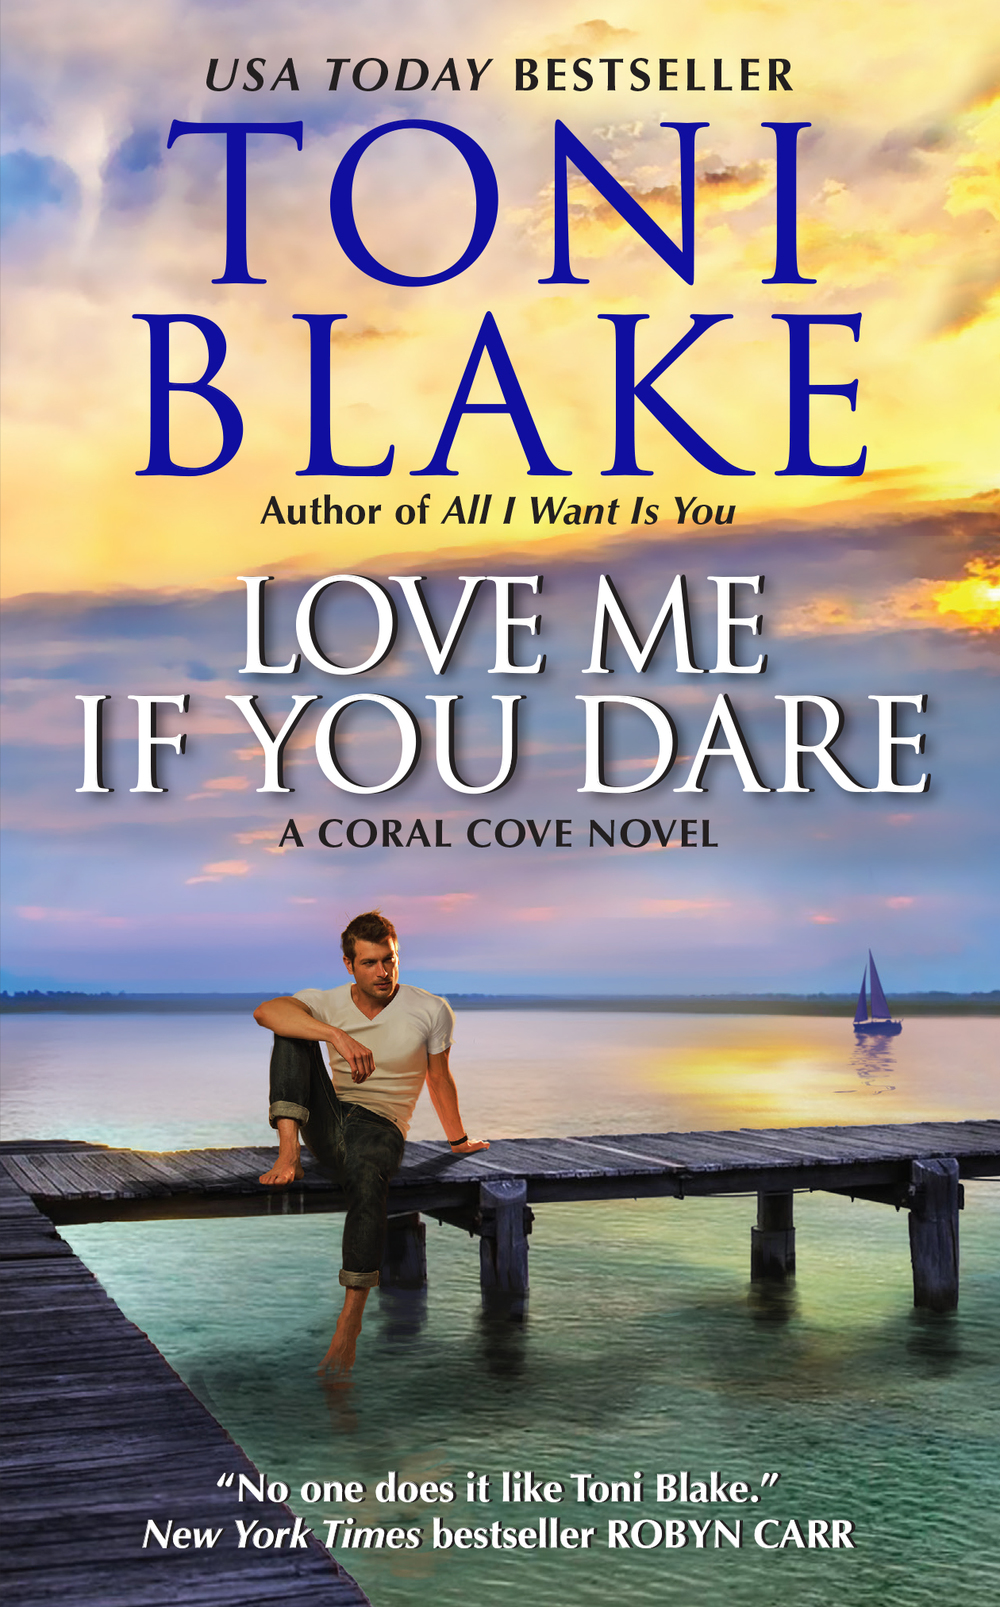 Love Me If You Dare   Coral Cove, book 2   Download for Digital Readers:   Avon Digital  |  Kindle  |  Nook   iBooks  |  Kobo  |  Google Play    Order in Print:   Amazon  |  B&N  |  BAM  |  Target   Indiebound  |  Book Depository  |  Rhapsody